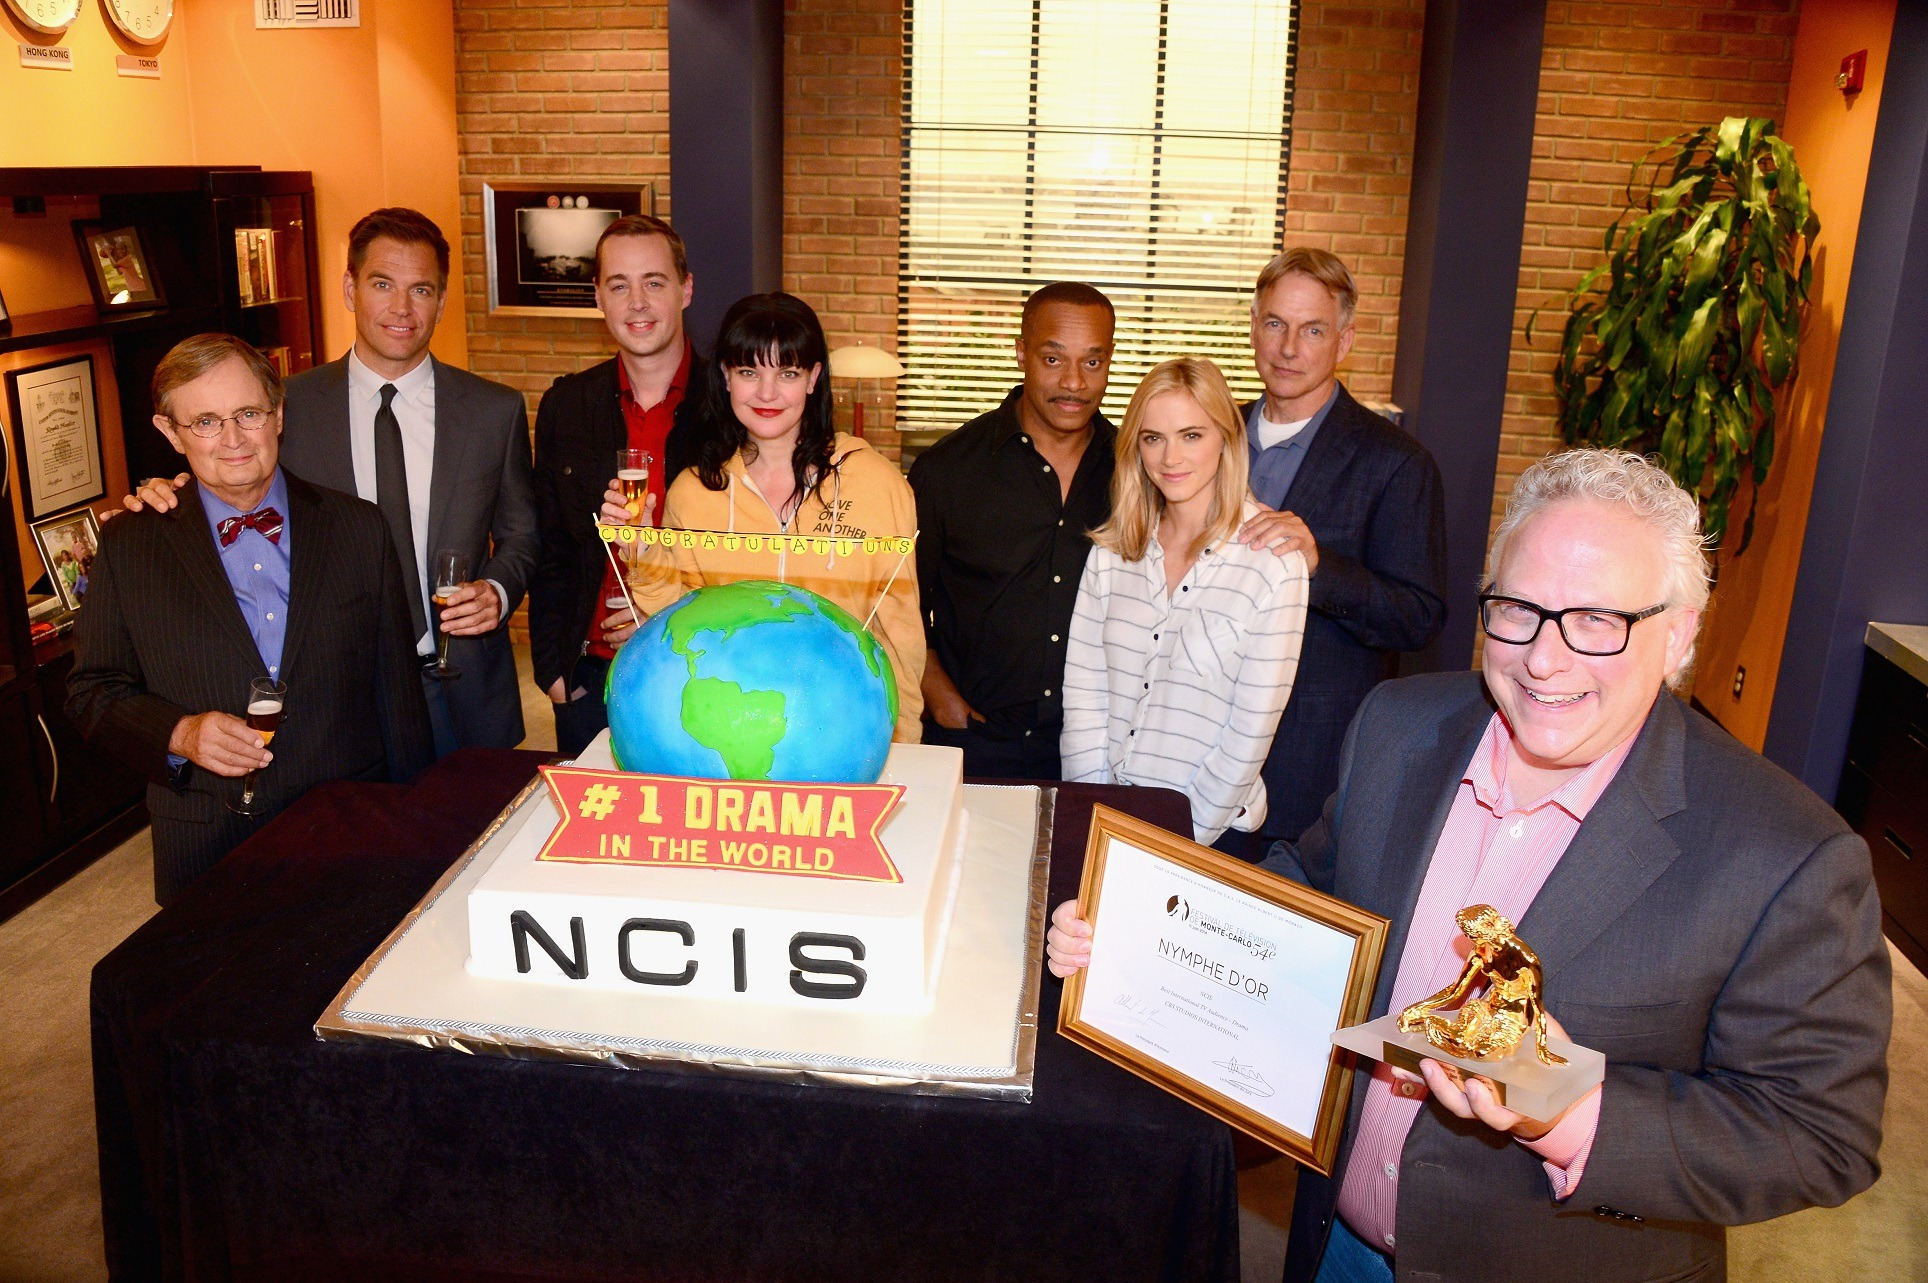 Pauley Perrette and Michael Weatherly with some of their NCIS cast mates.